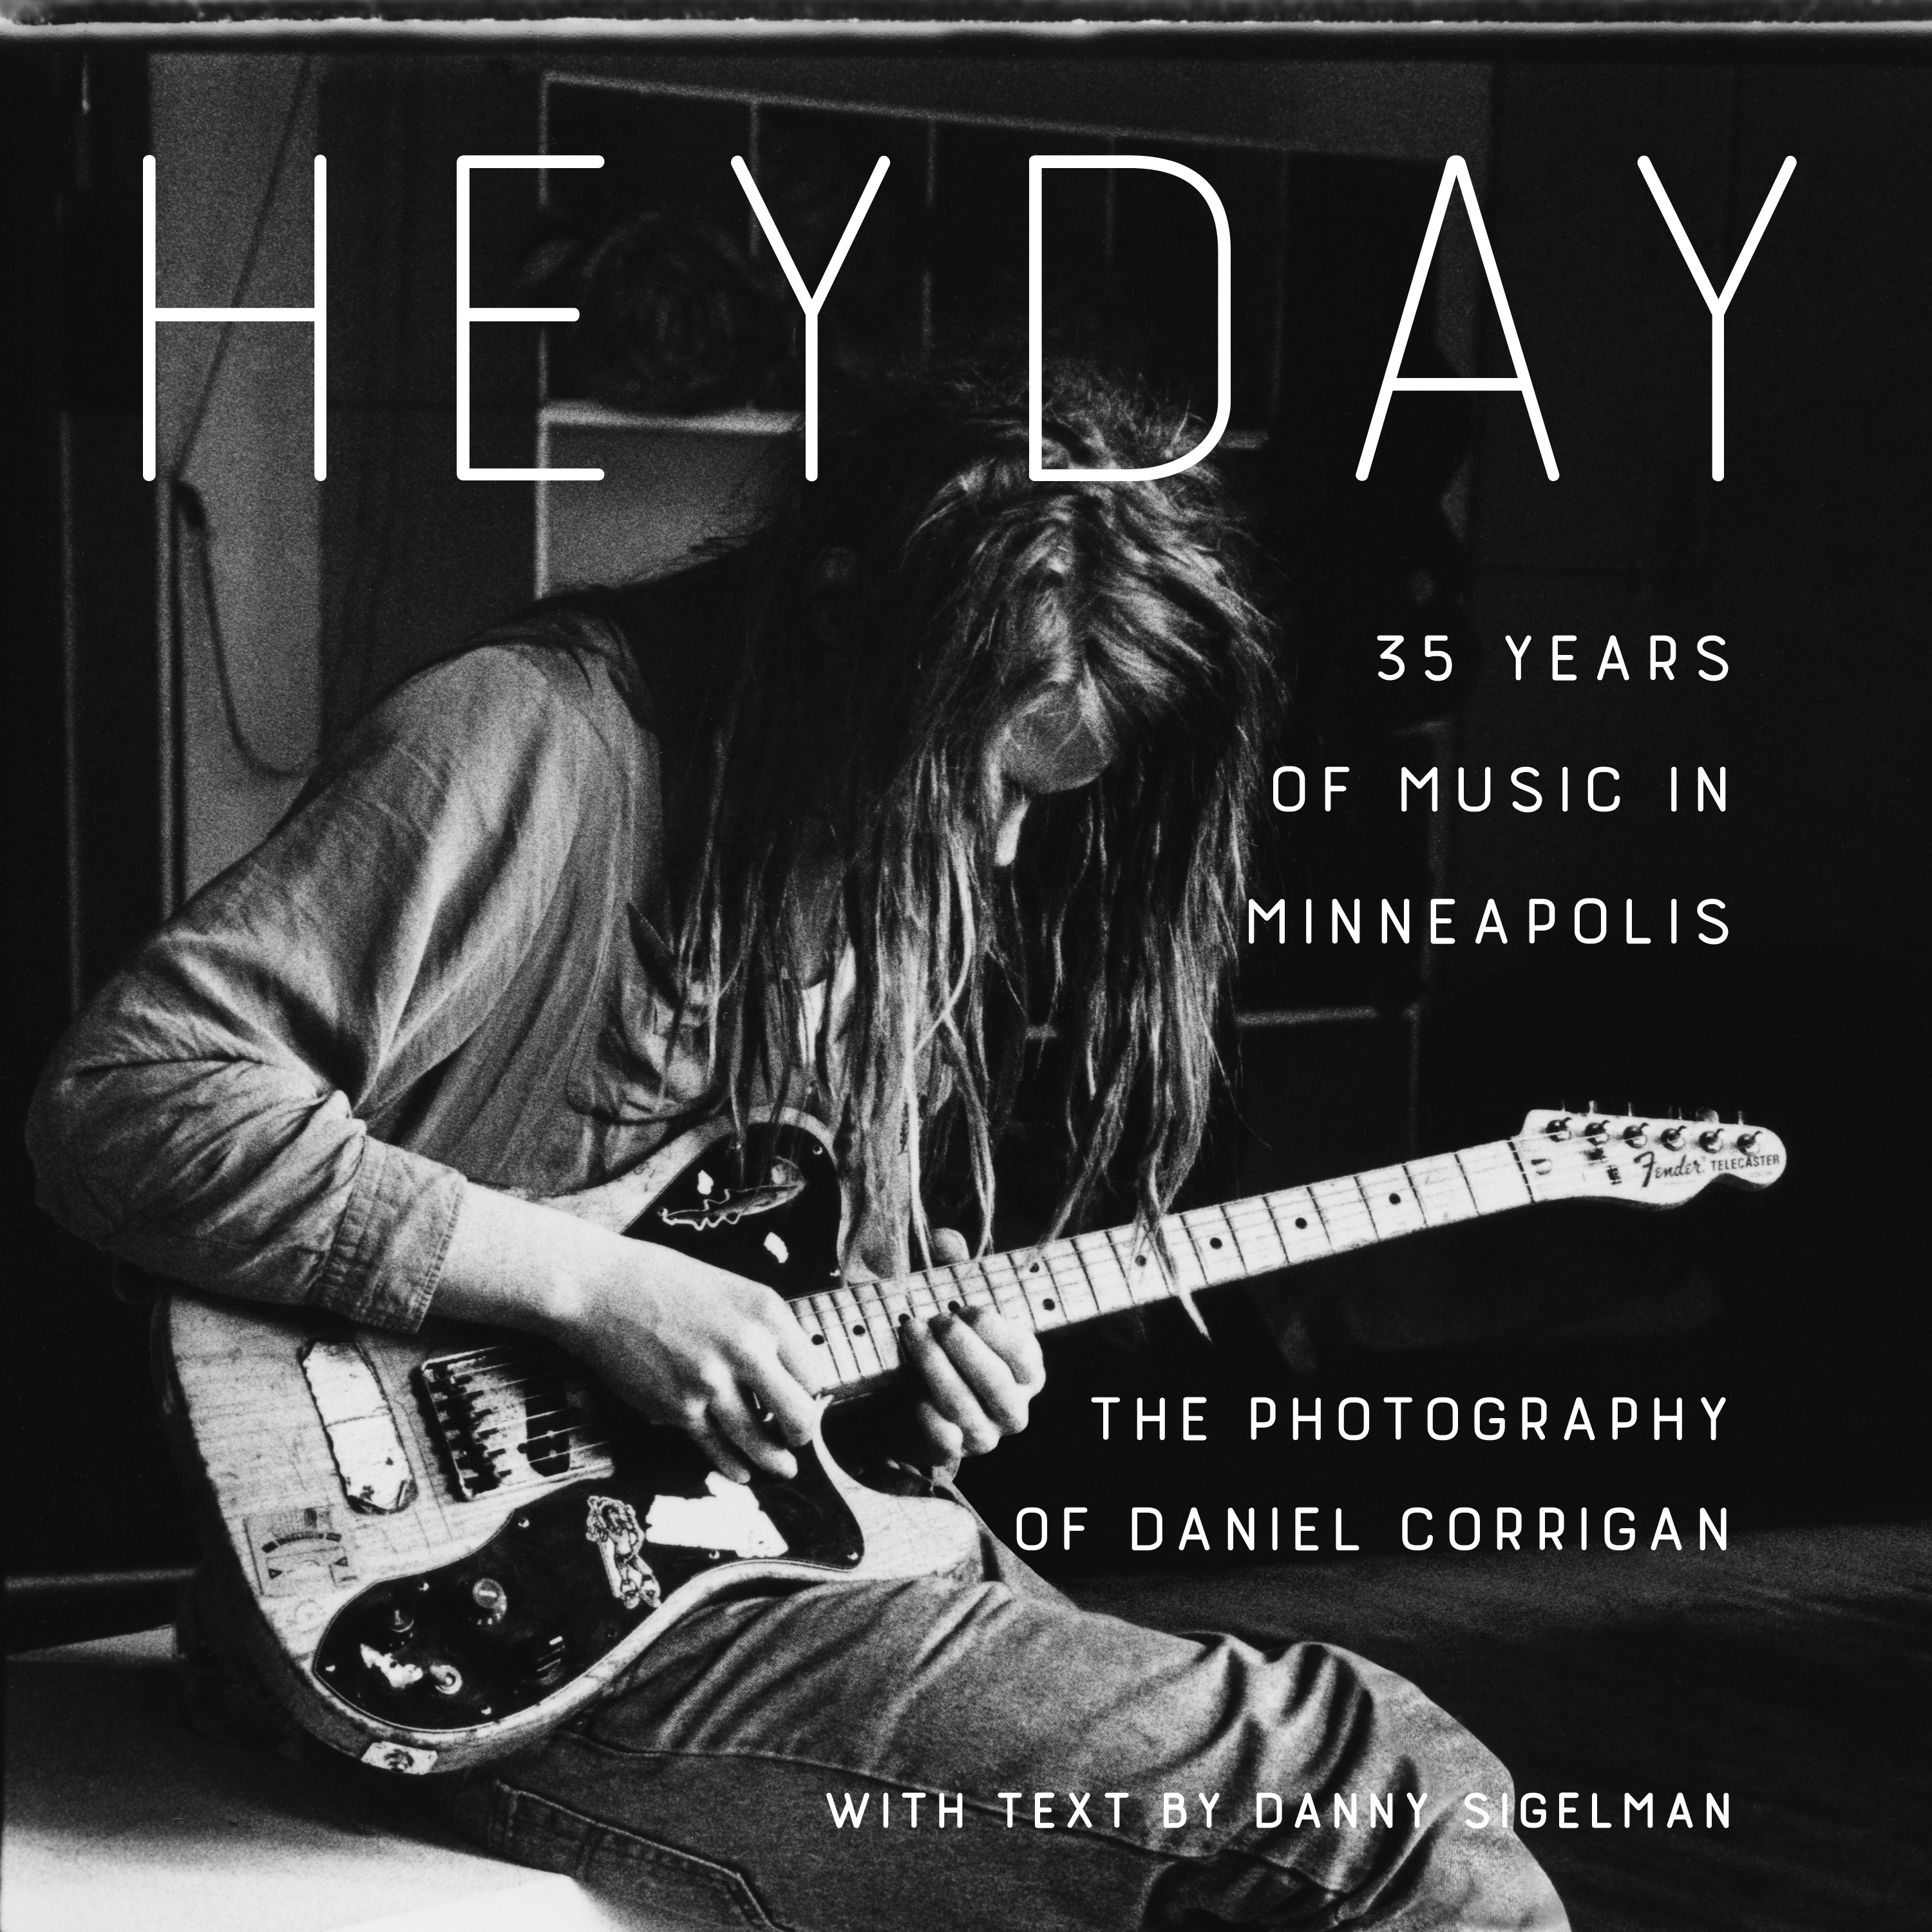 Heyday: 35 Years of Music in Minneapolis, Photography by Daniel Corrigan with text by Danny Sigelman